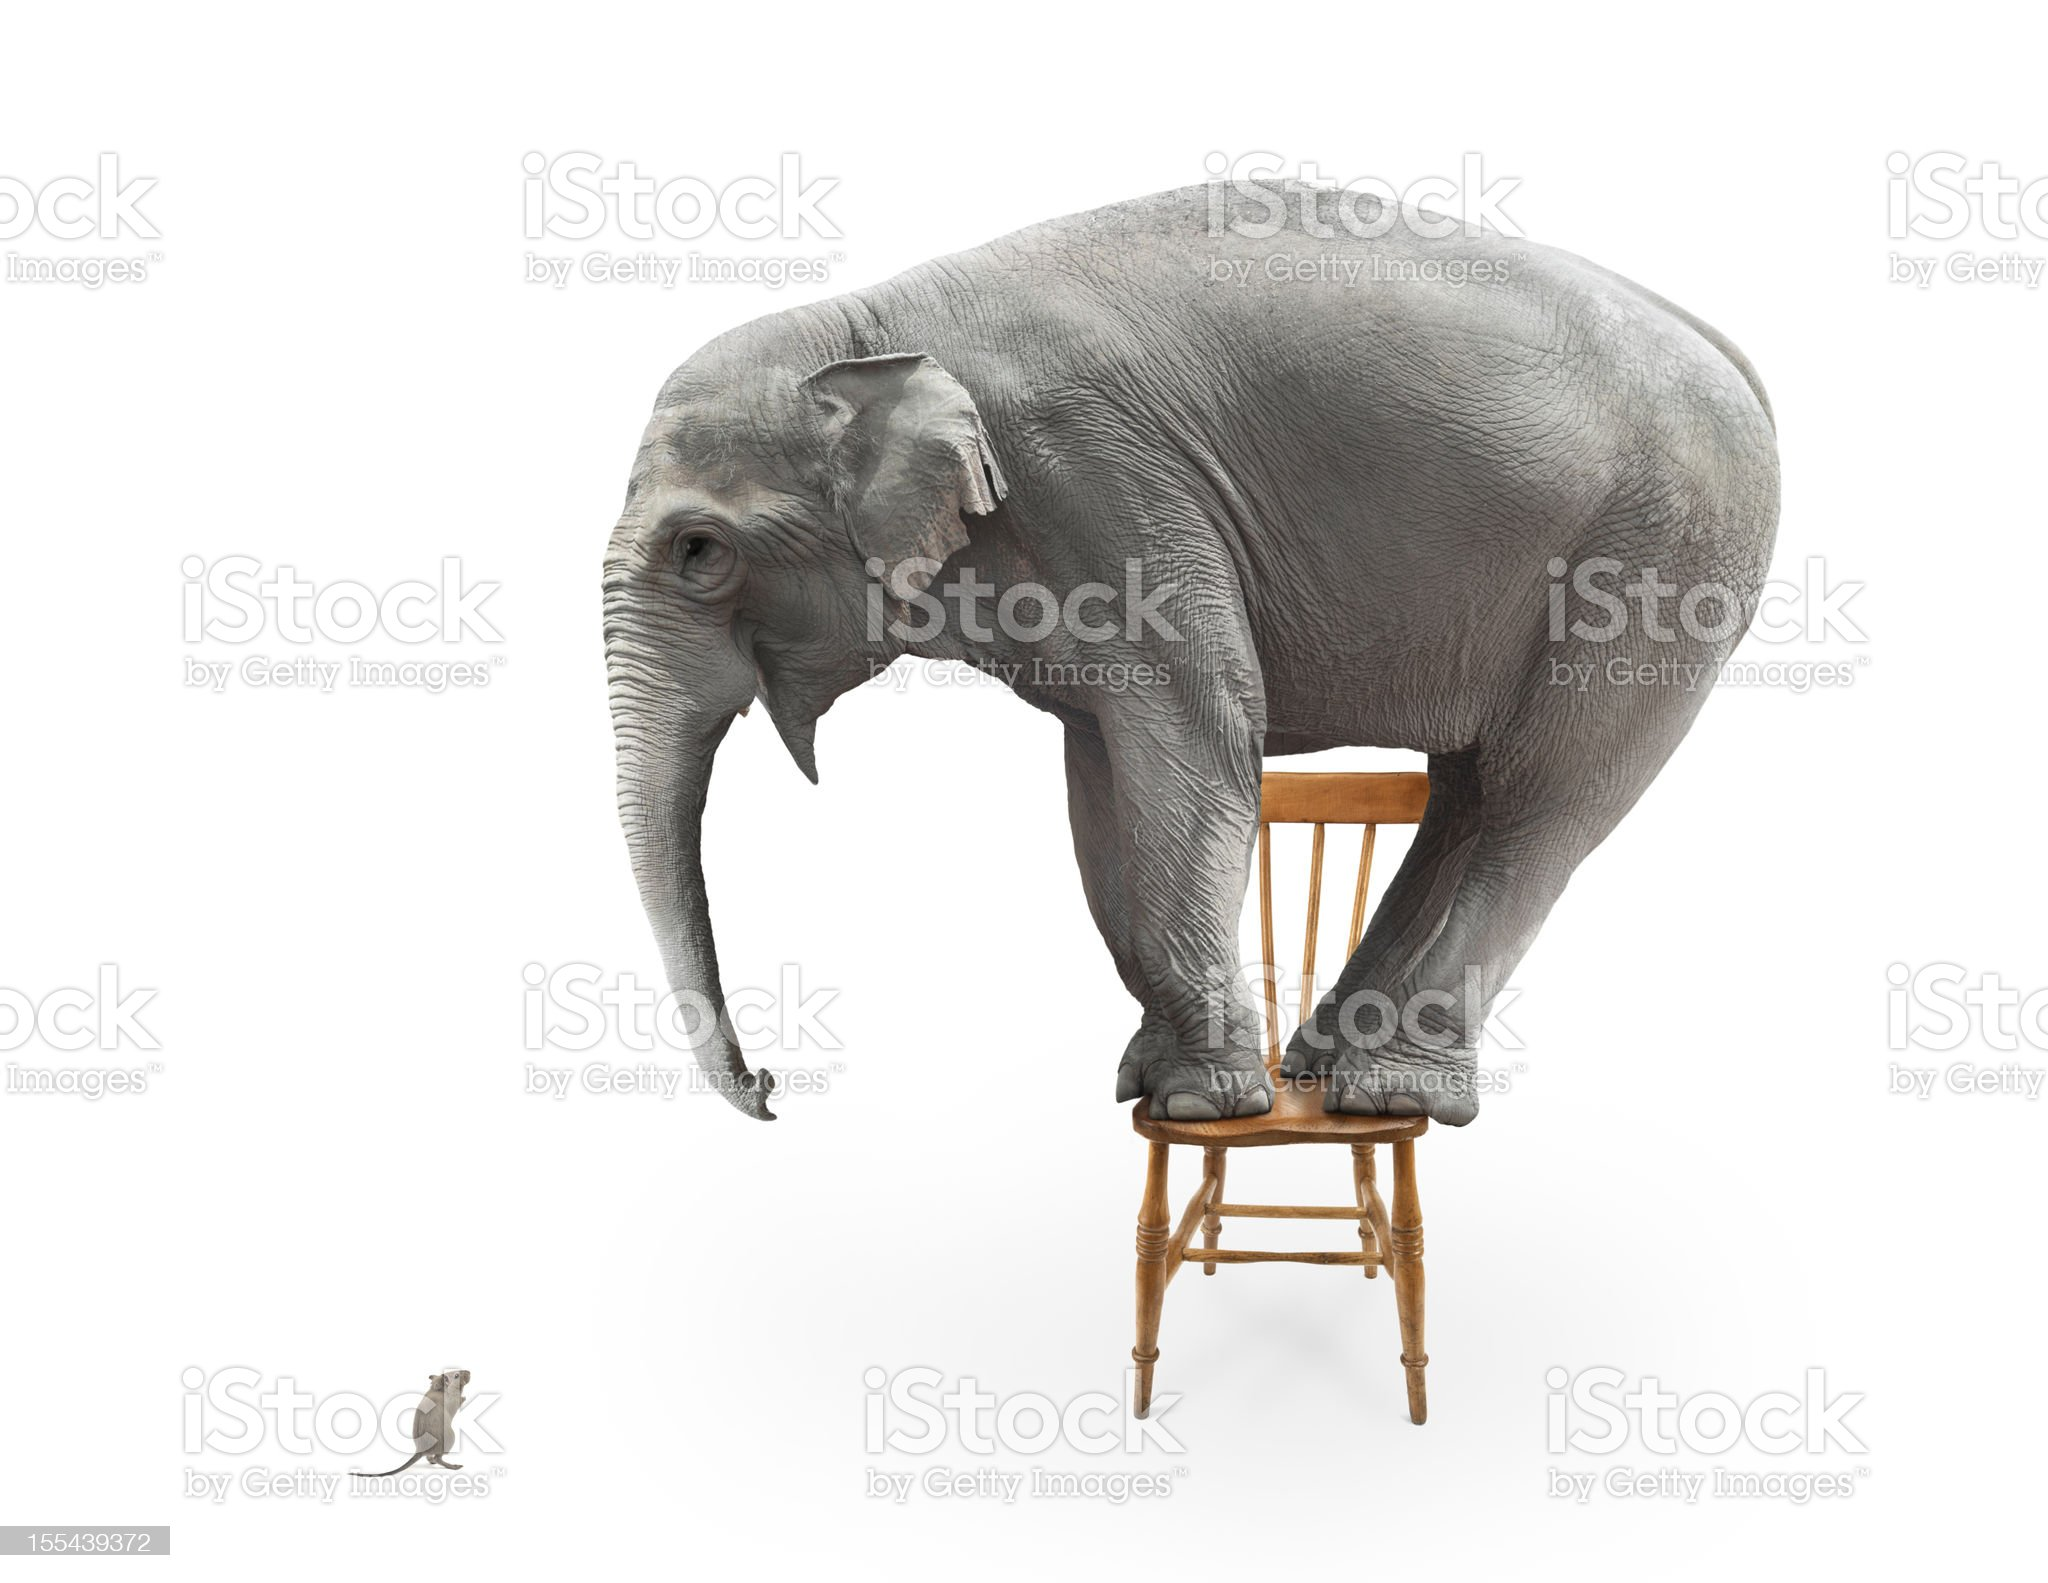 Elephant's fear of mice royalty-free stock photo